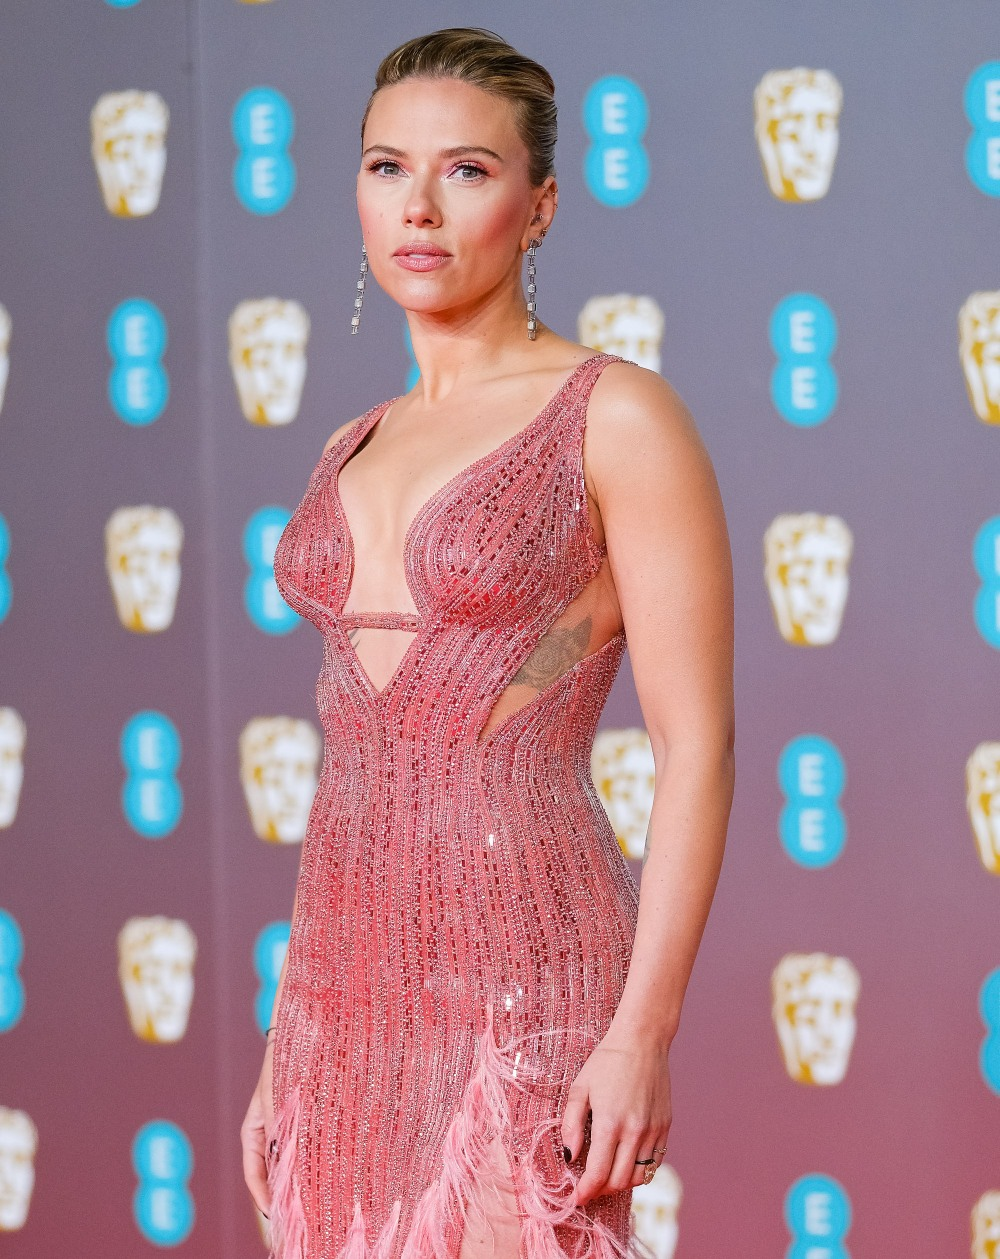 Scarlett Johansson attends the 2020 EE British Academy Film Awards on Sunday 2 February 2020